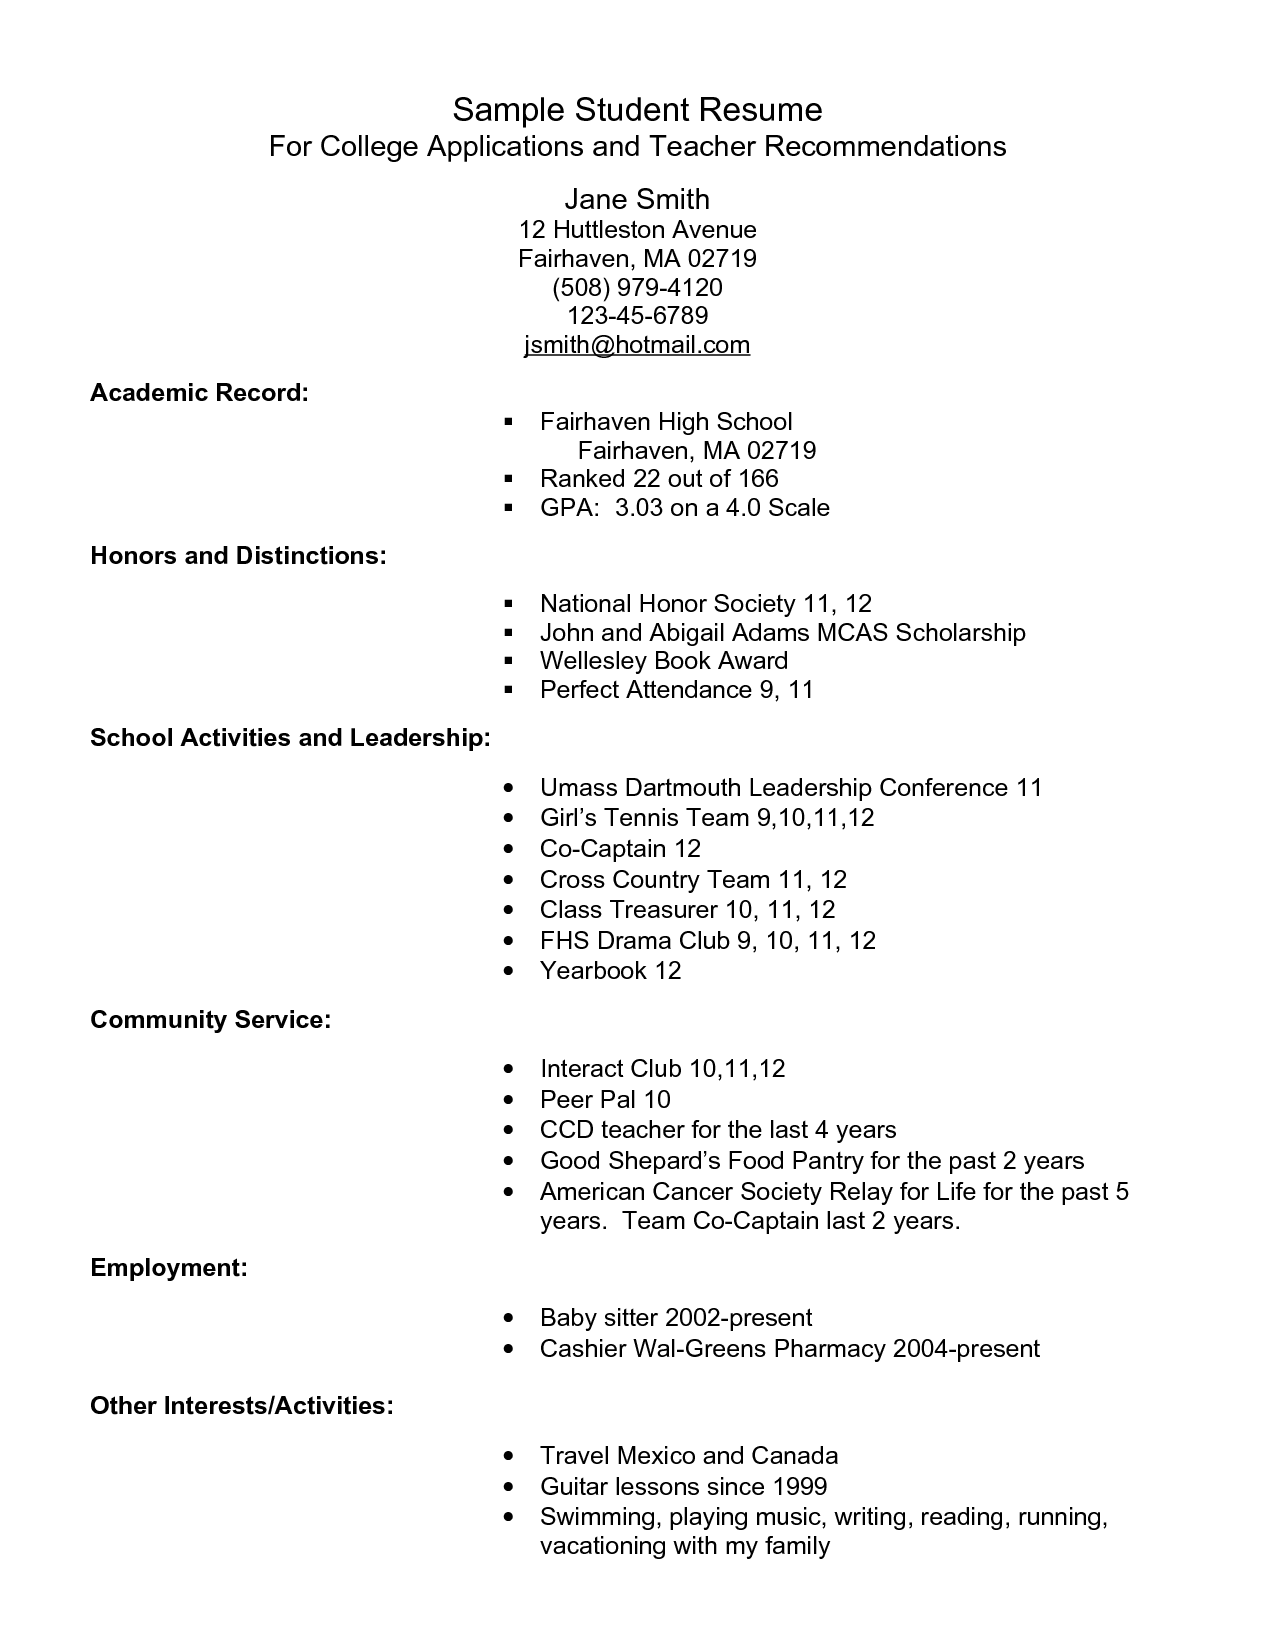 example resume for high school students for college applications sample student resume pdf by - Graduate School Resume Samples